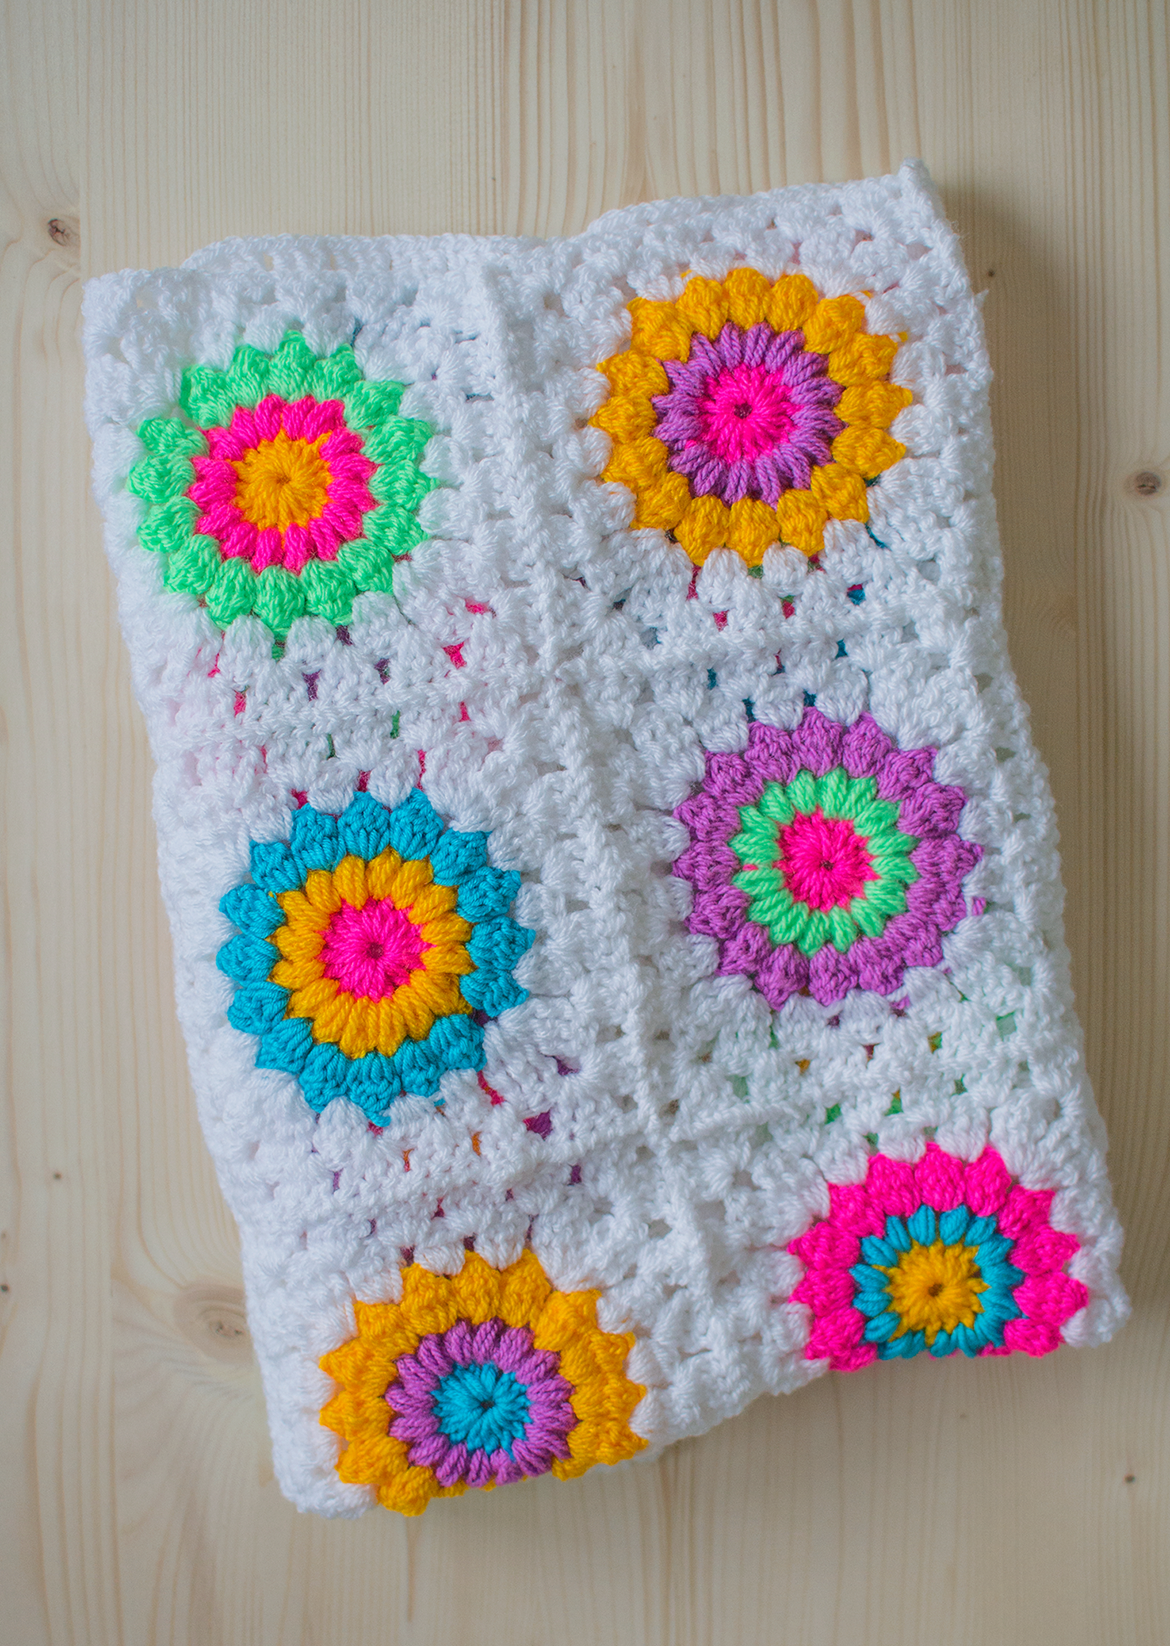 My Latest Crochet Projects - bright and colourful sunburst granny square crochet blanket